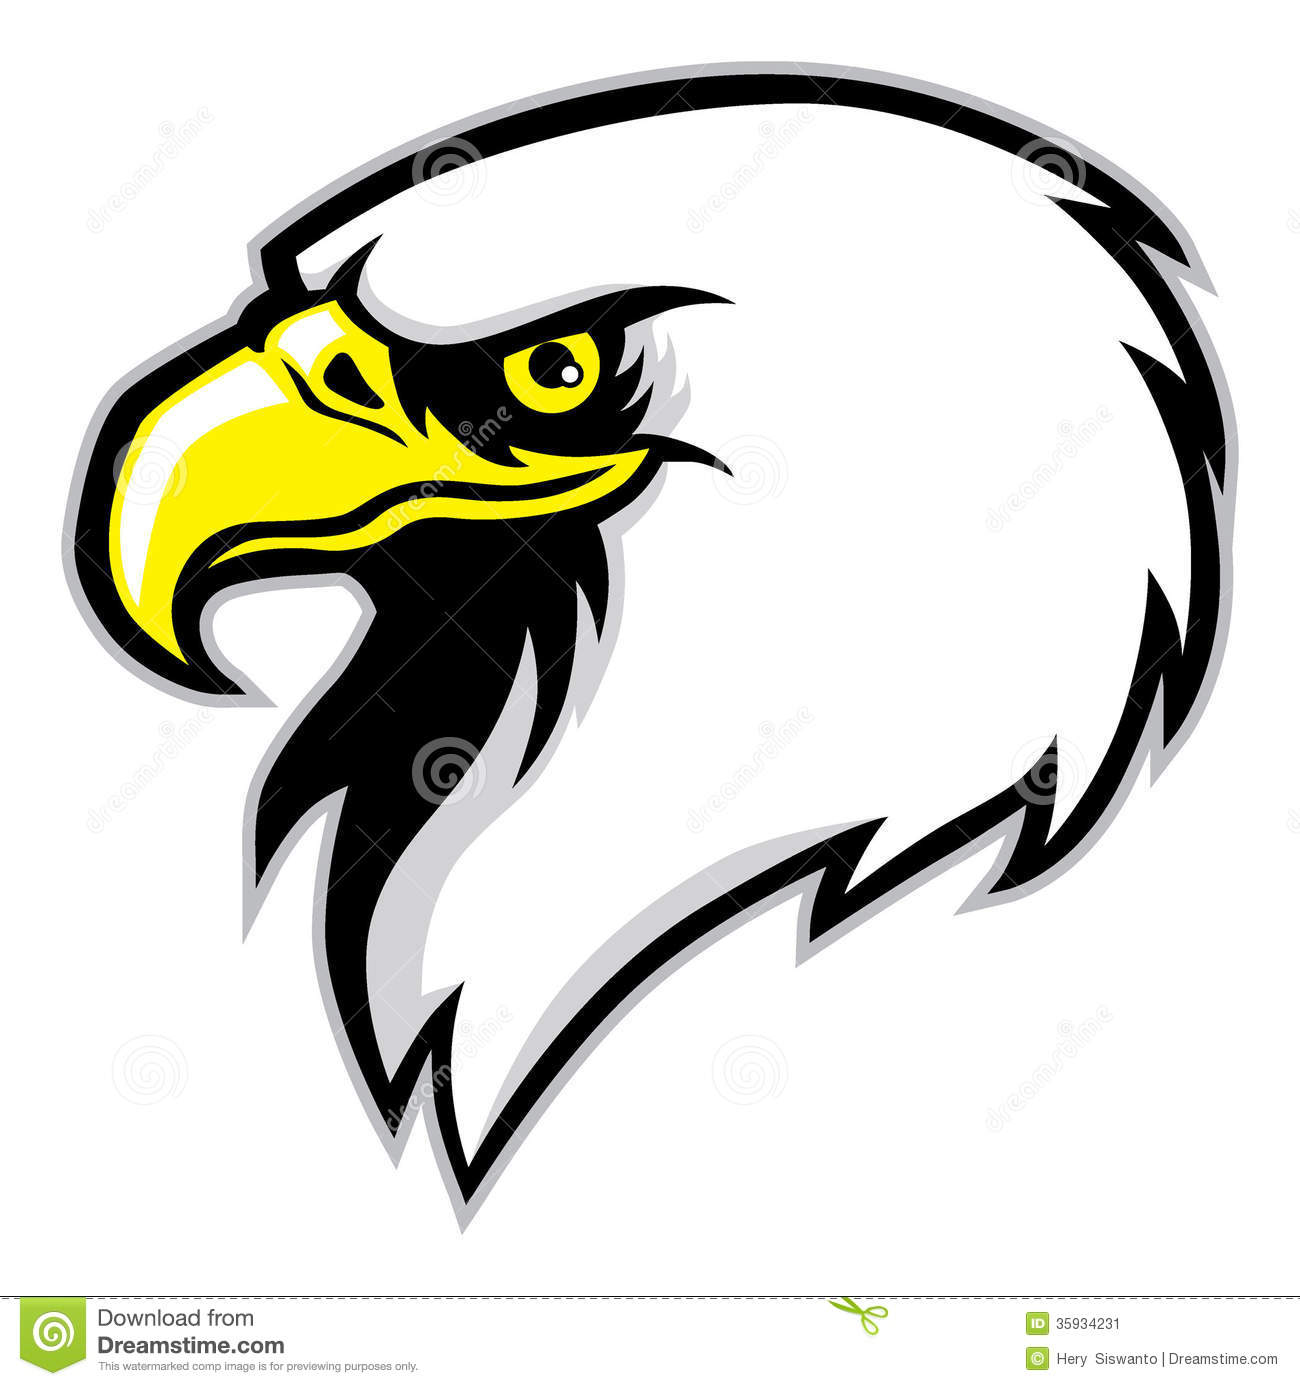 eagle vector clipart free download - photo #44